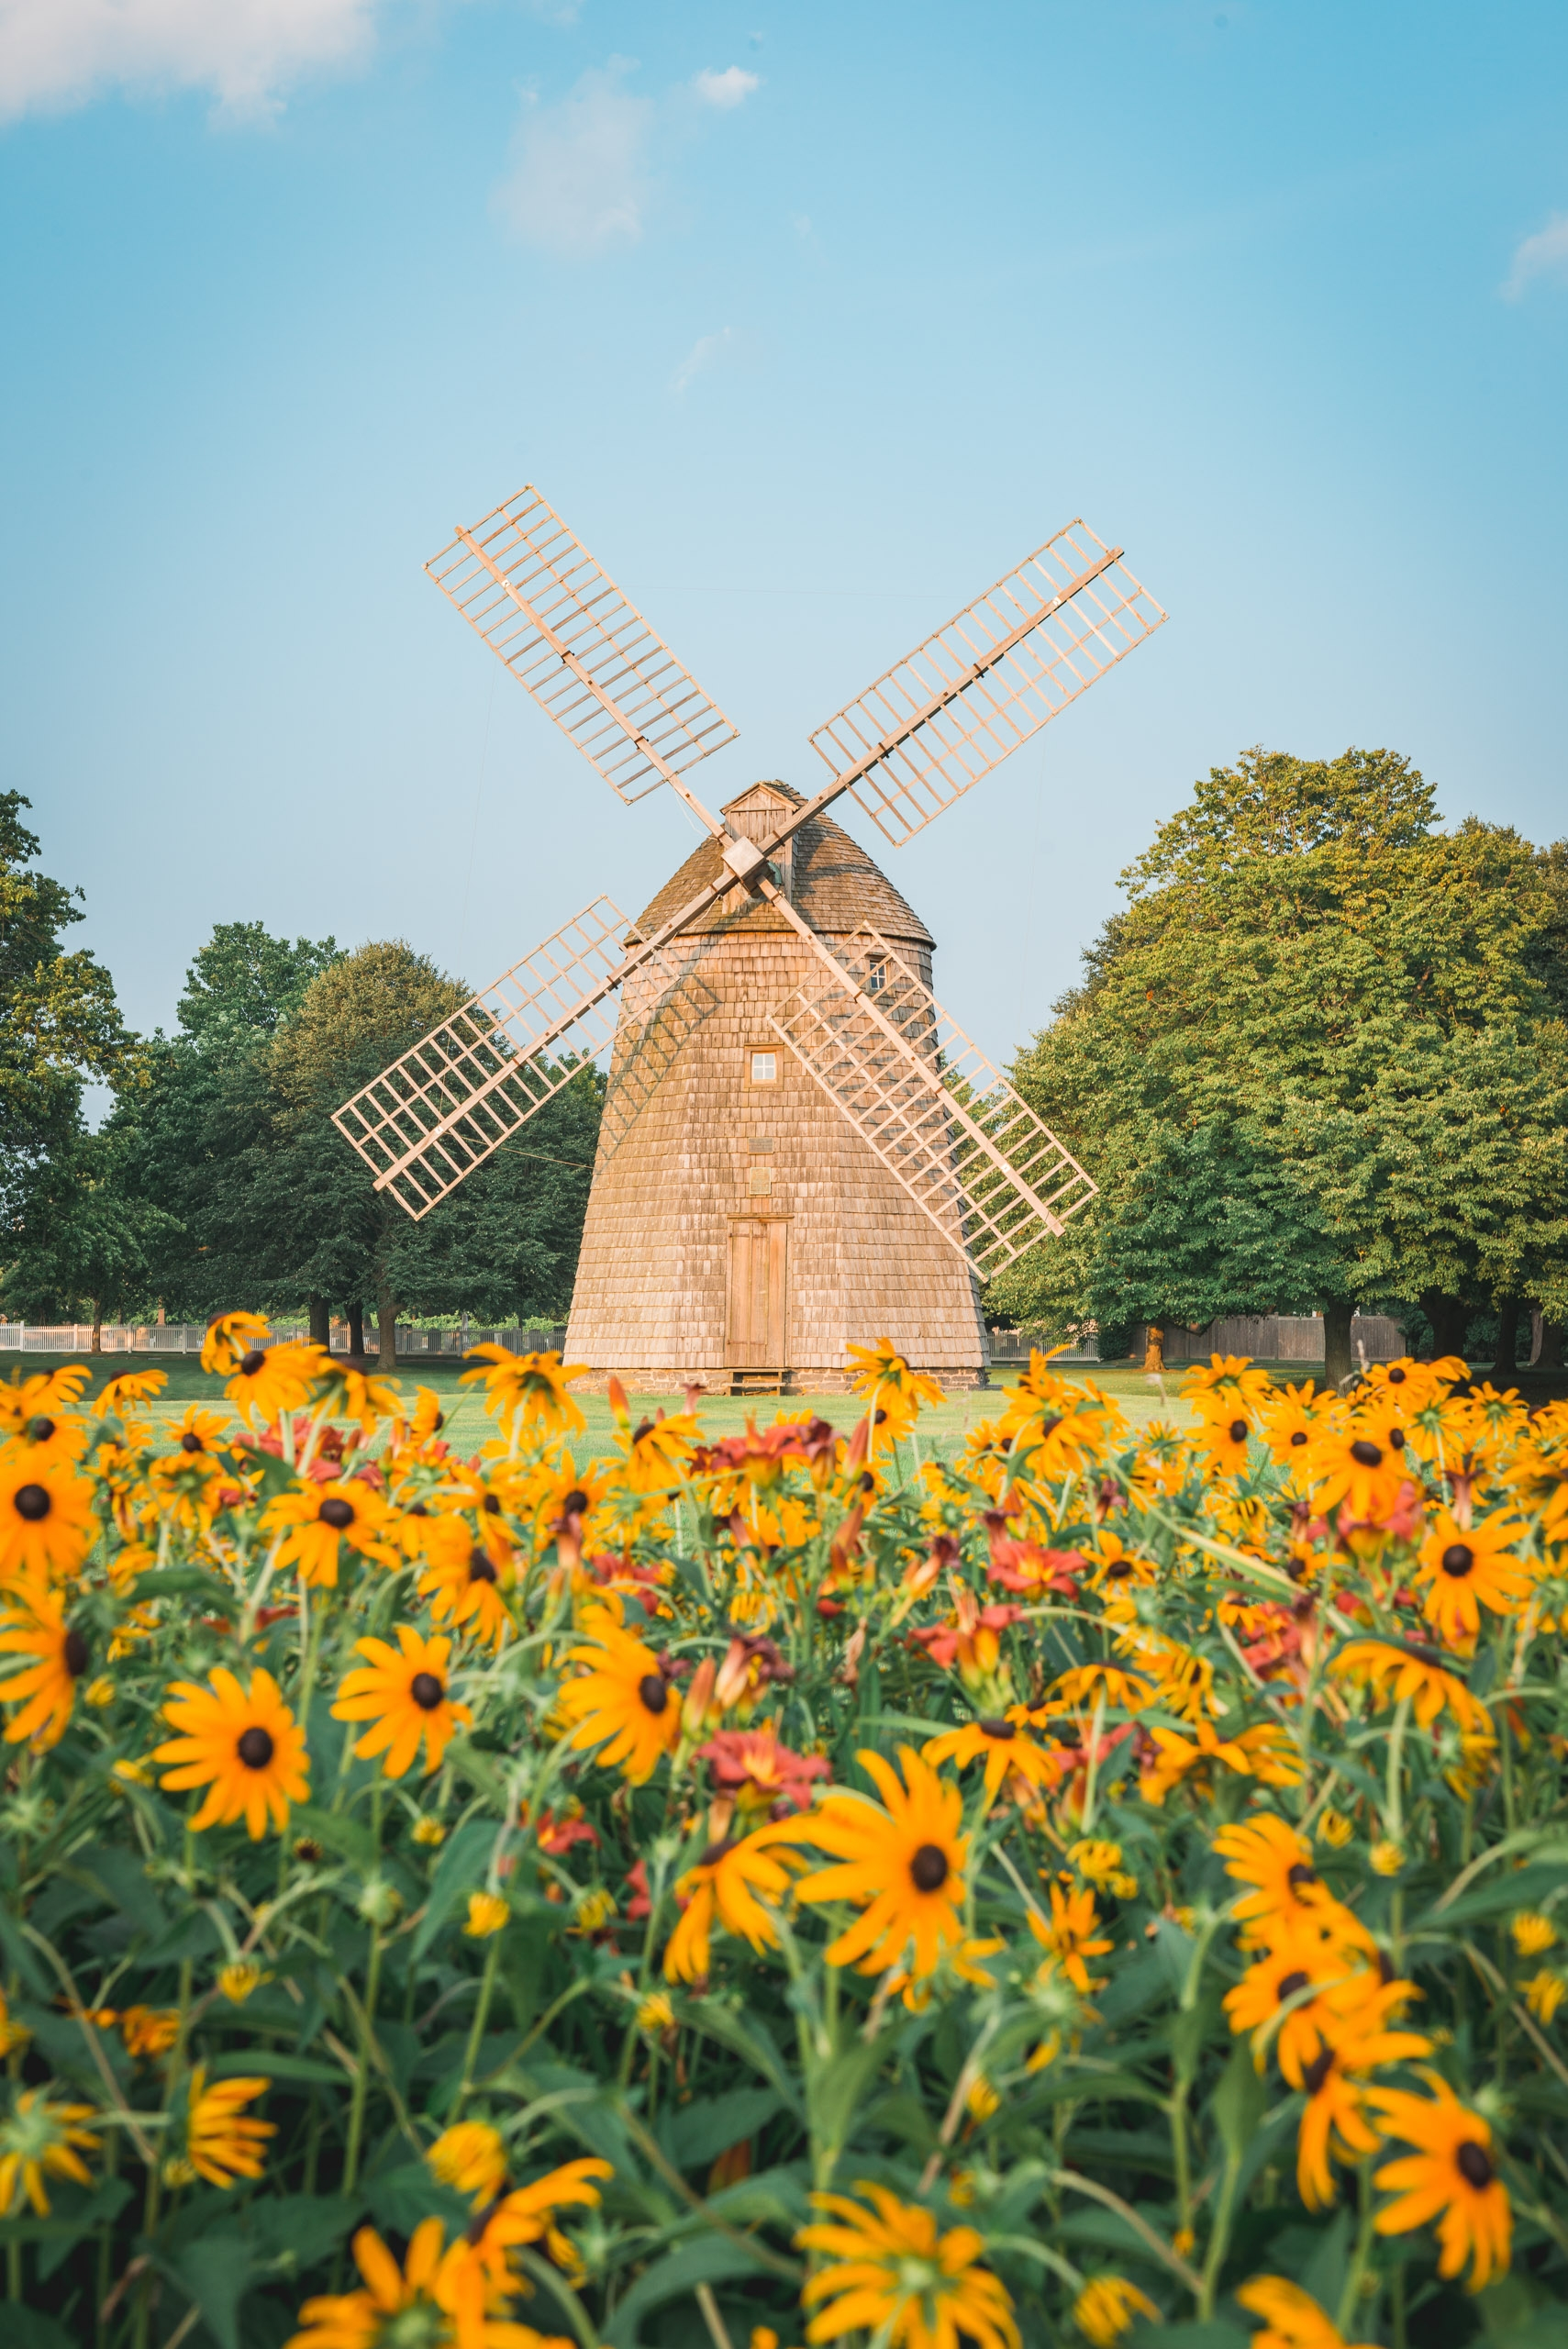 The Windmill and the Flowers